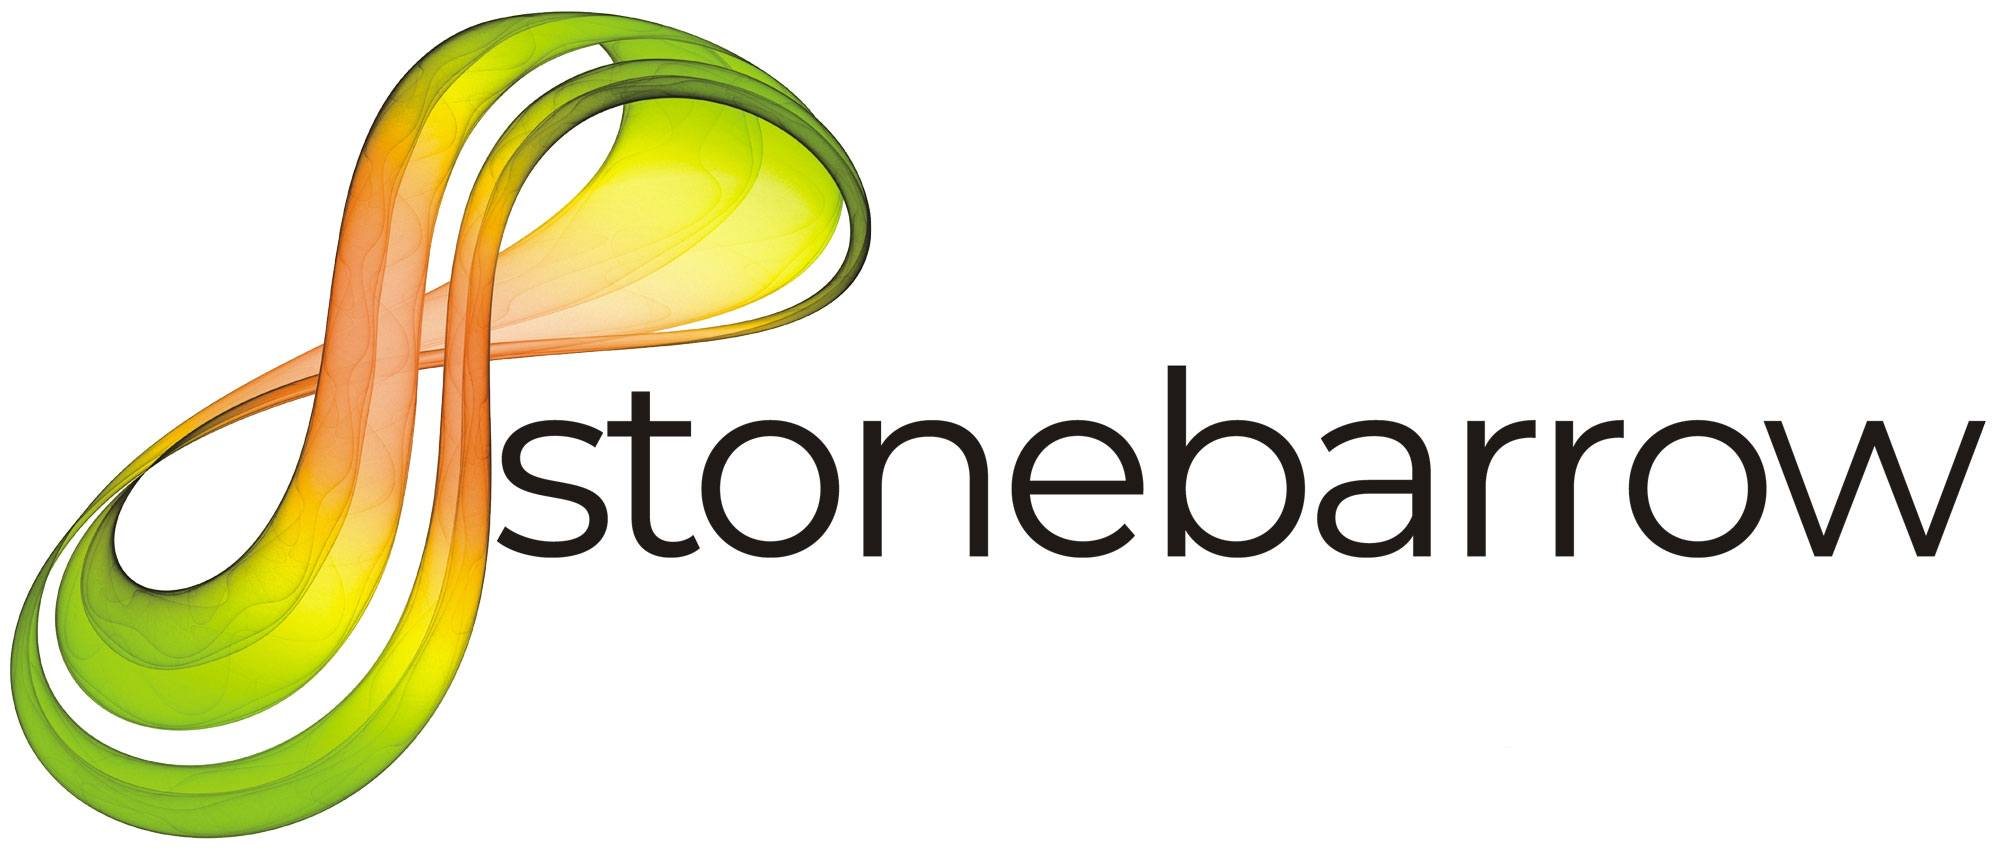 Stonebarrow Ltd